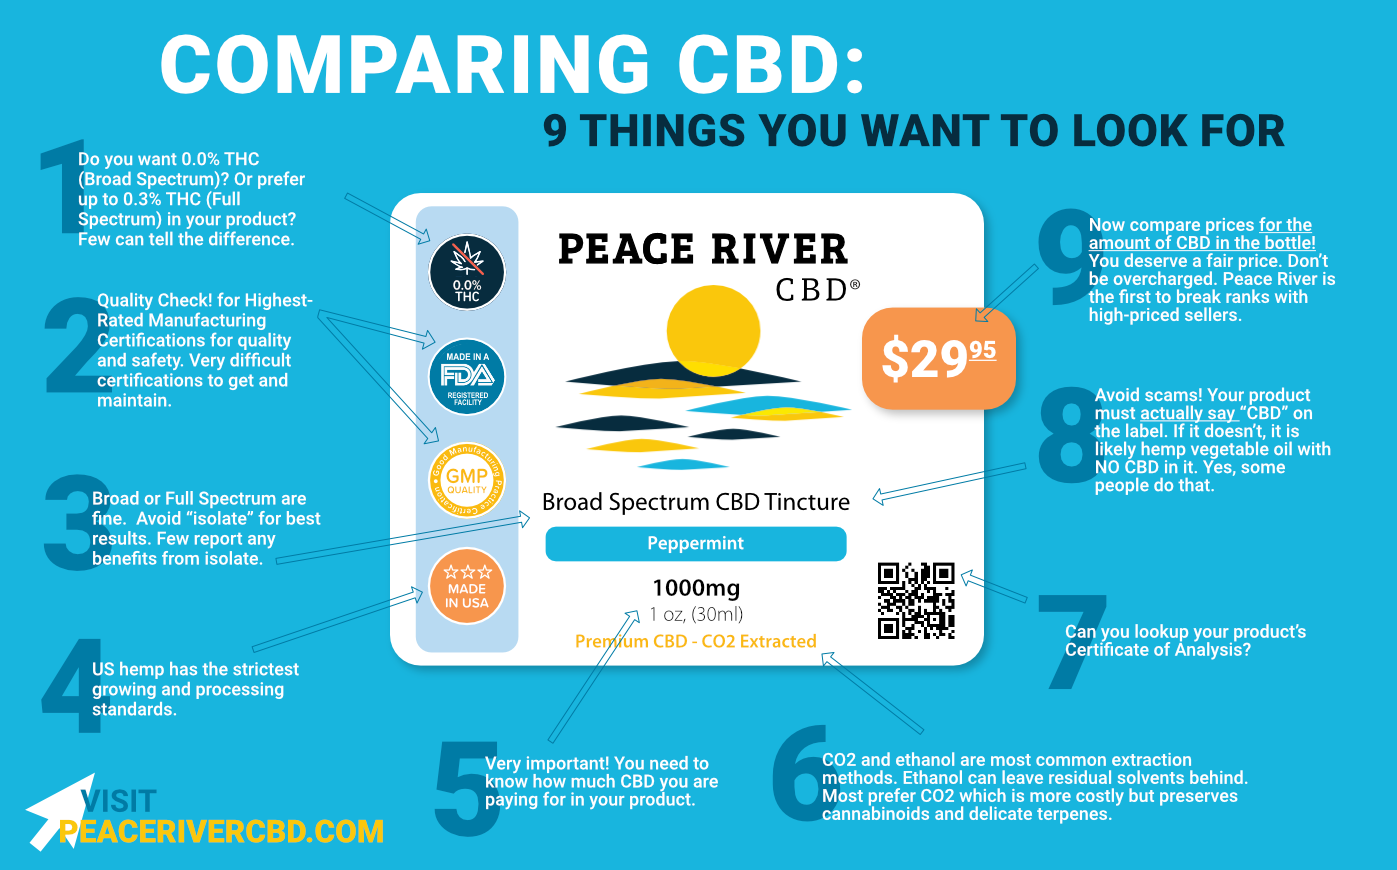 Comparing CBD oil - 9 Things You Want to Look For